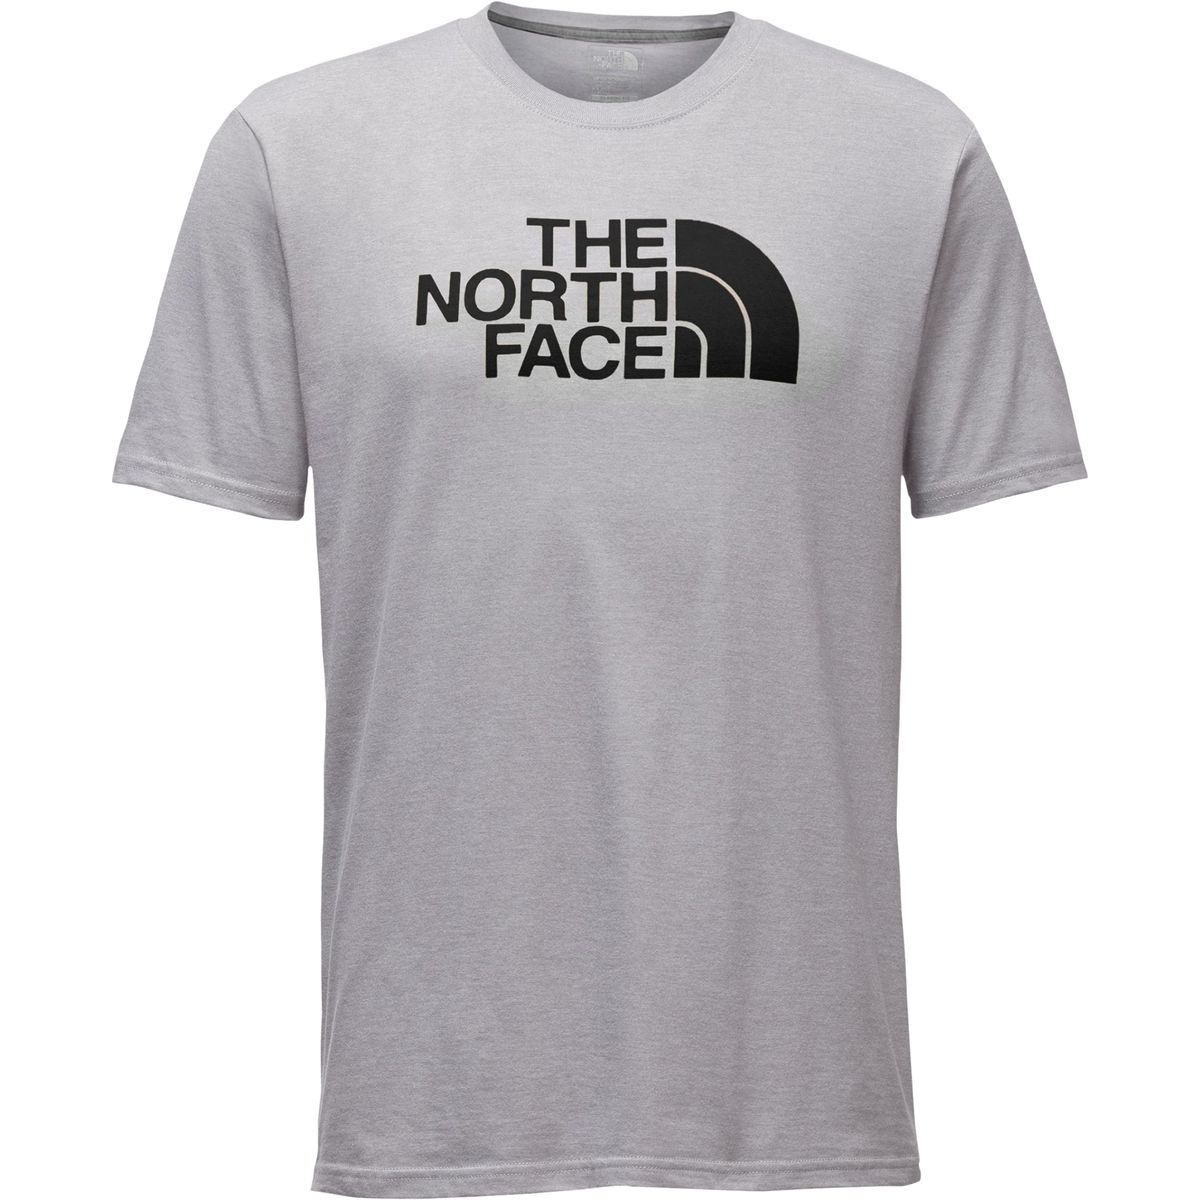 The North Face Half Dome T-Shirt - Short-Sleeve - Men